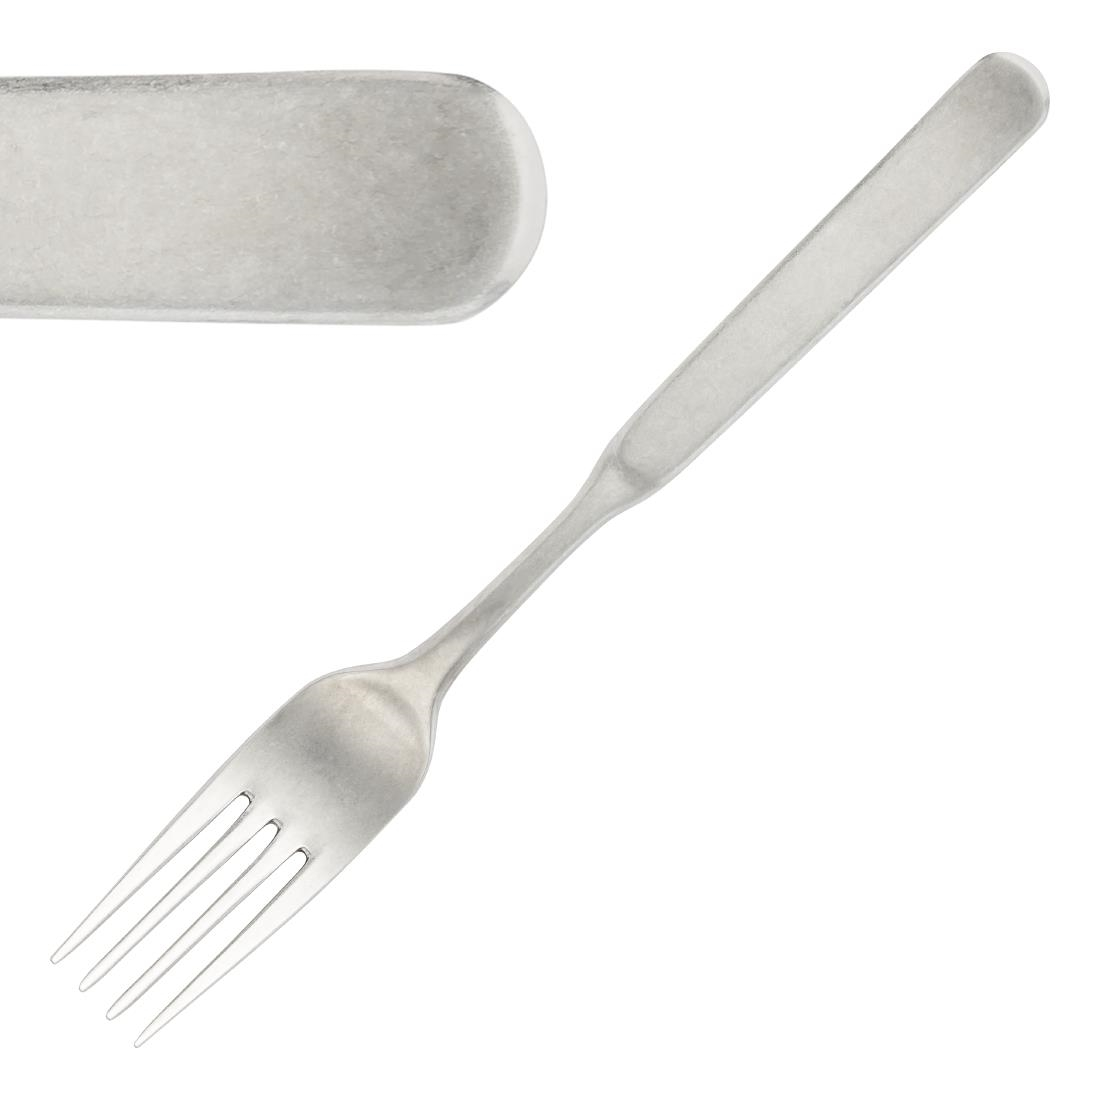 Image of Pintinox Casali Stonewashed Table Fork (Pack of 12) Pack of 12